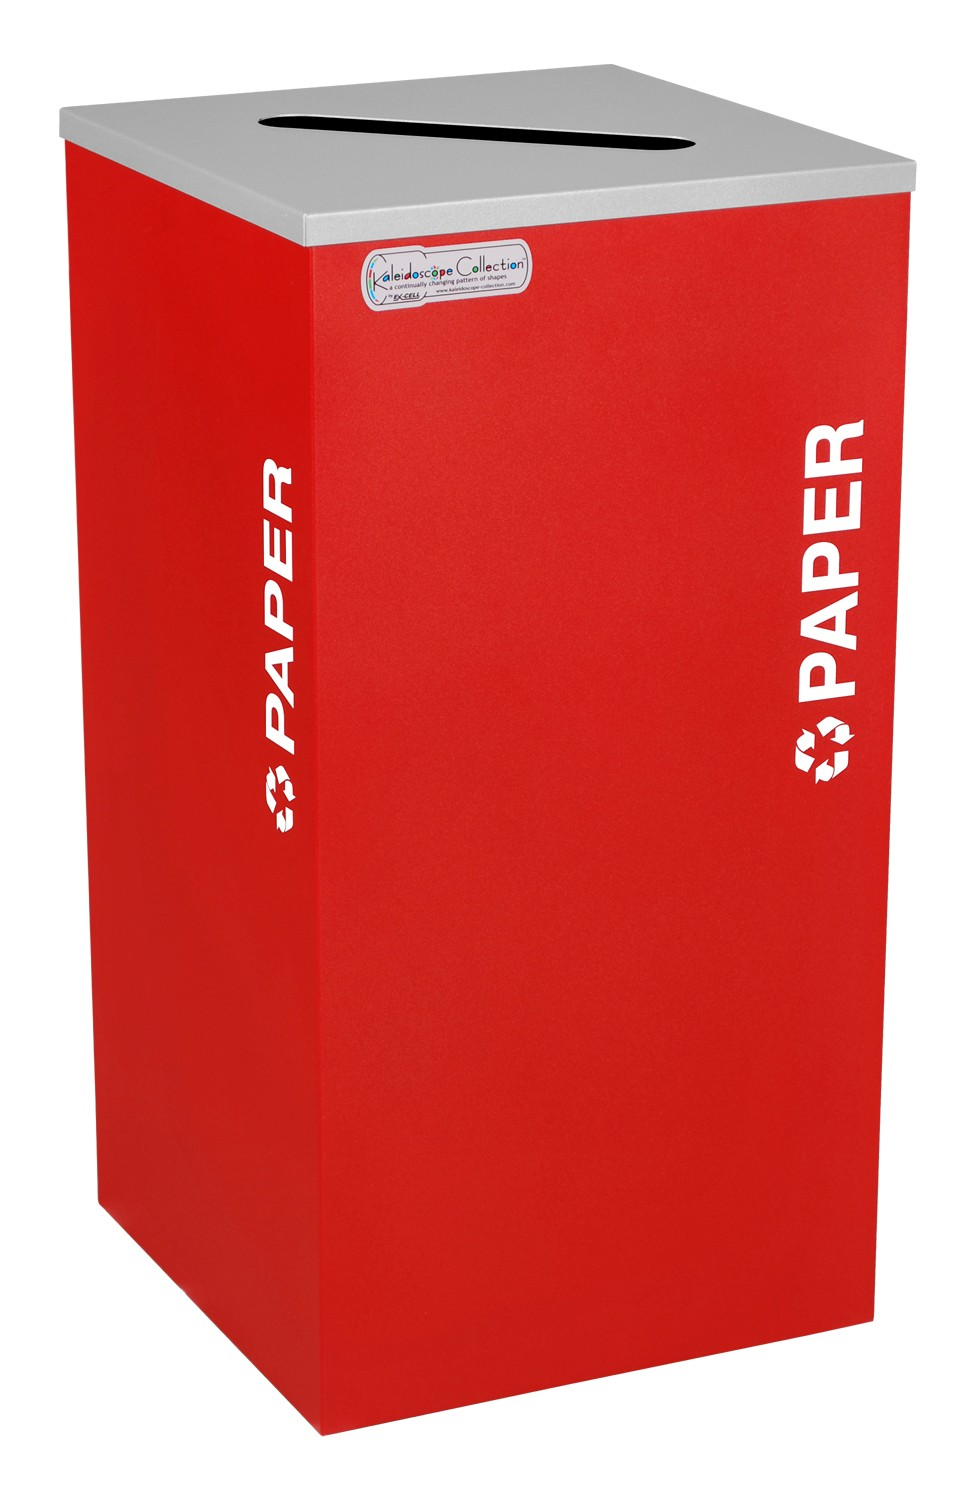 Ex-Cell Kaiser RC-KDSQ-P RBX 18-gal recycling recptacle- square top and Plastic decal- Ruby Texture finish